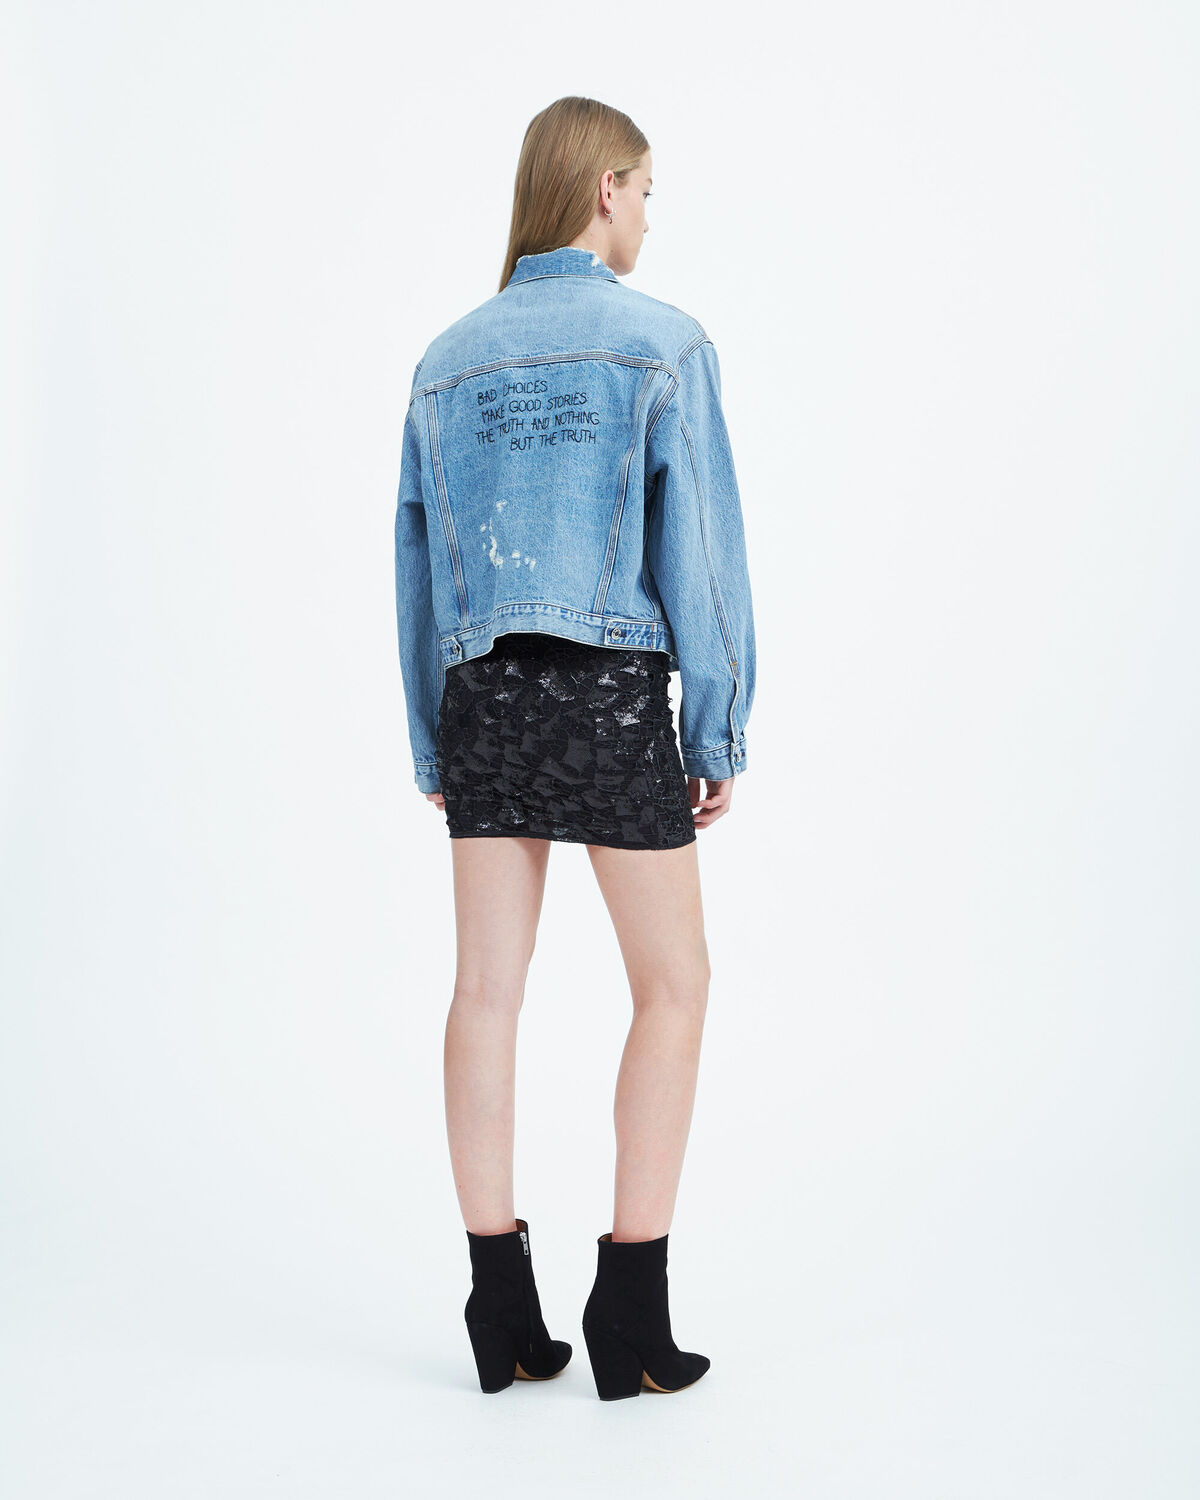 IRO - BILL.US JEANS JACKET LIGHT BLUE DENIM